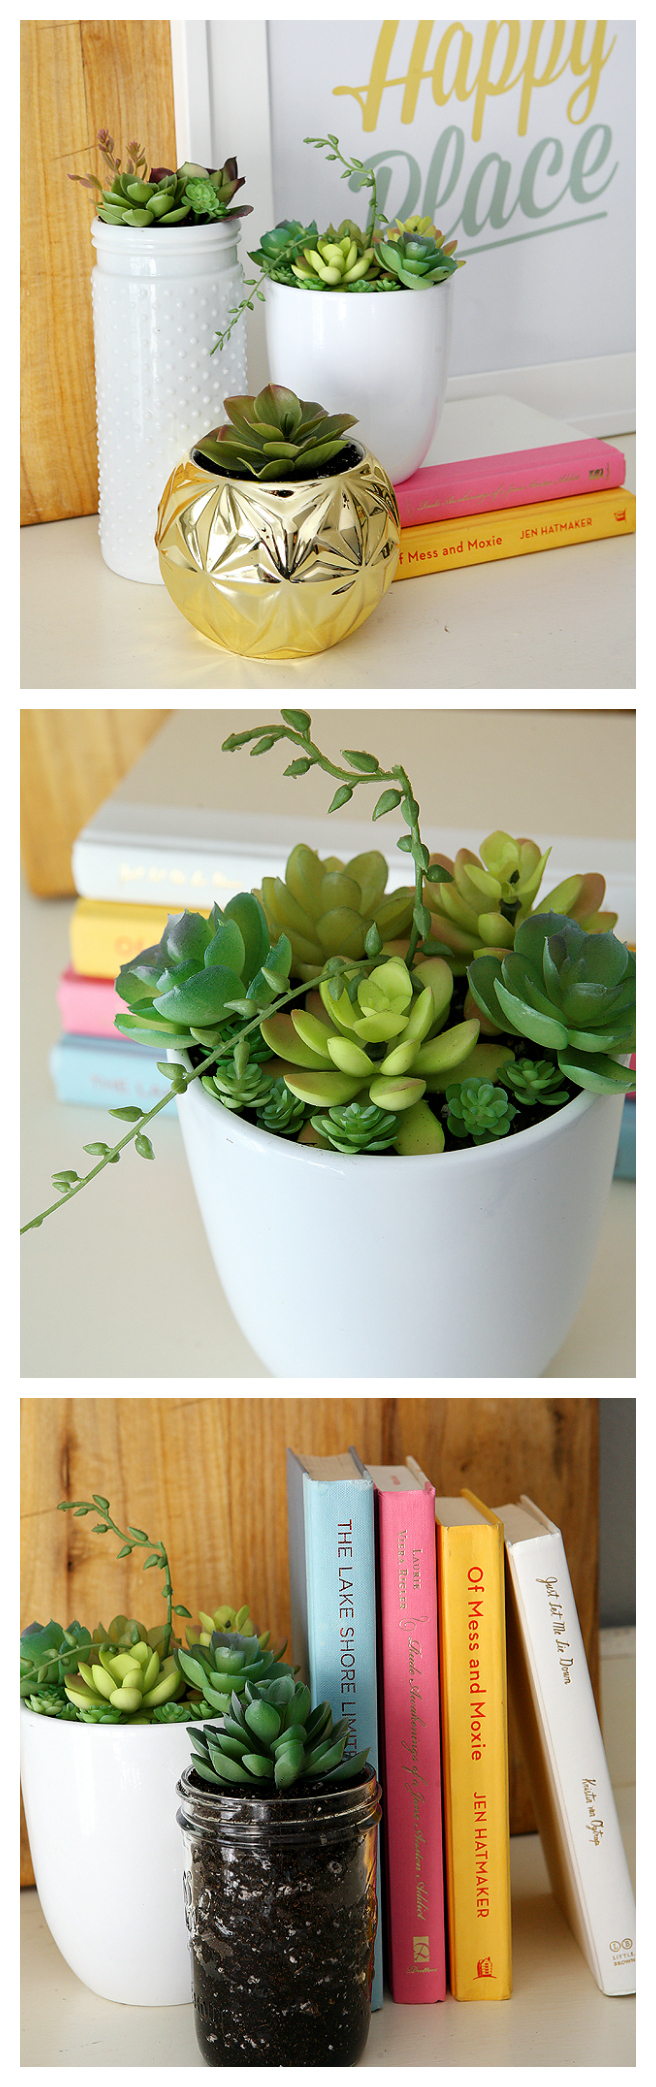 Adorable Thrifted Spring Succulent Arrangement | Put together using items from the thrift store!